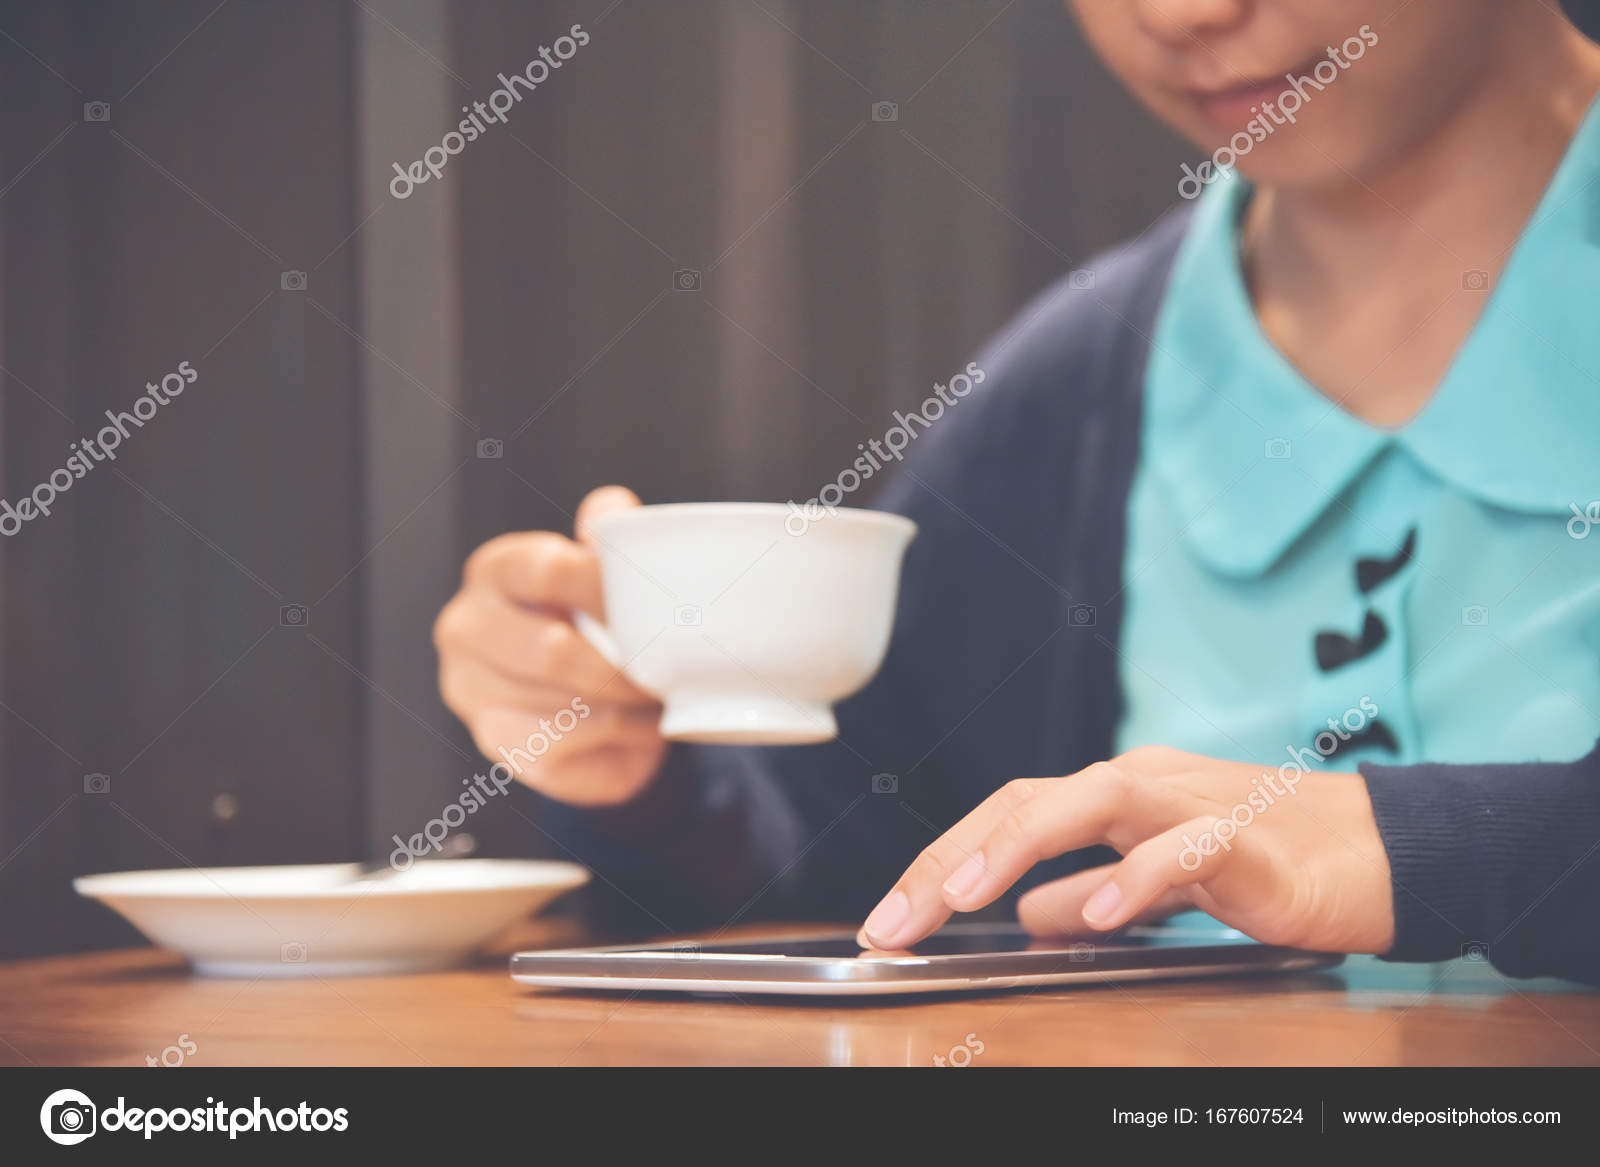 flipping pages while drinking coffee Caffeine can be found in coffee, tea, soft drinks, sports/energy drinks (including the sports water products), some over-the-counter and prescription medications, and foods containing coffee or chocolate.